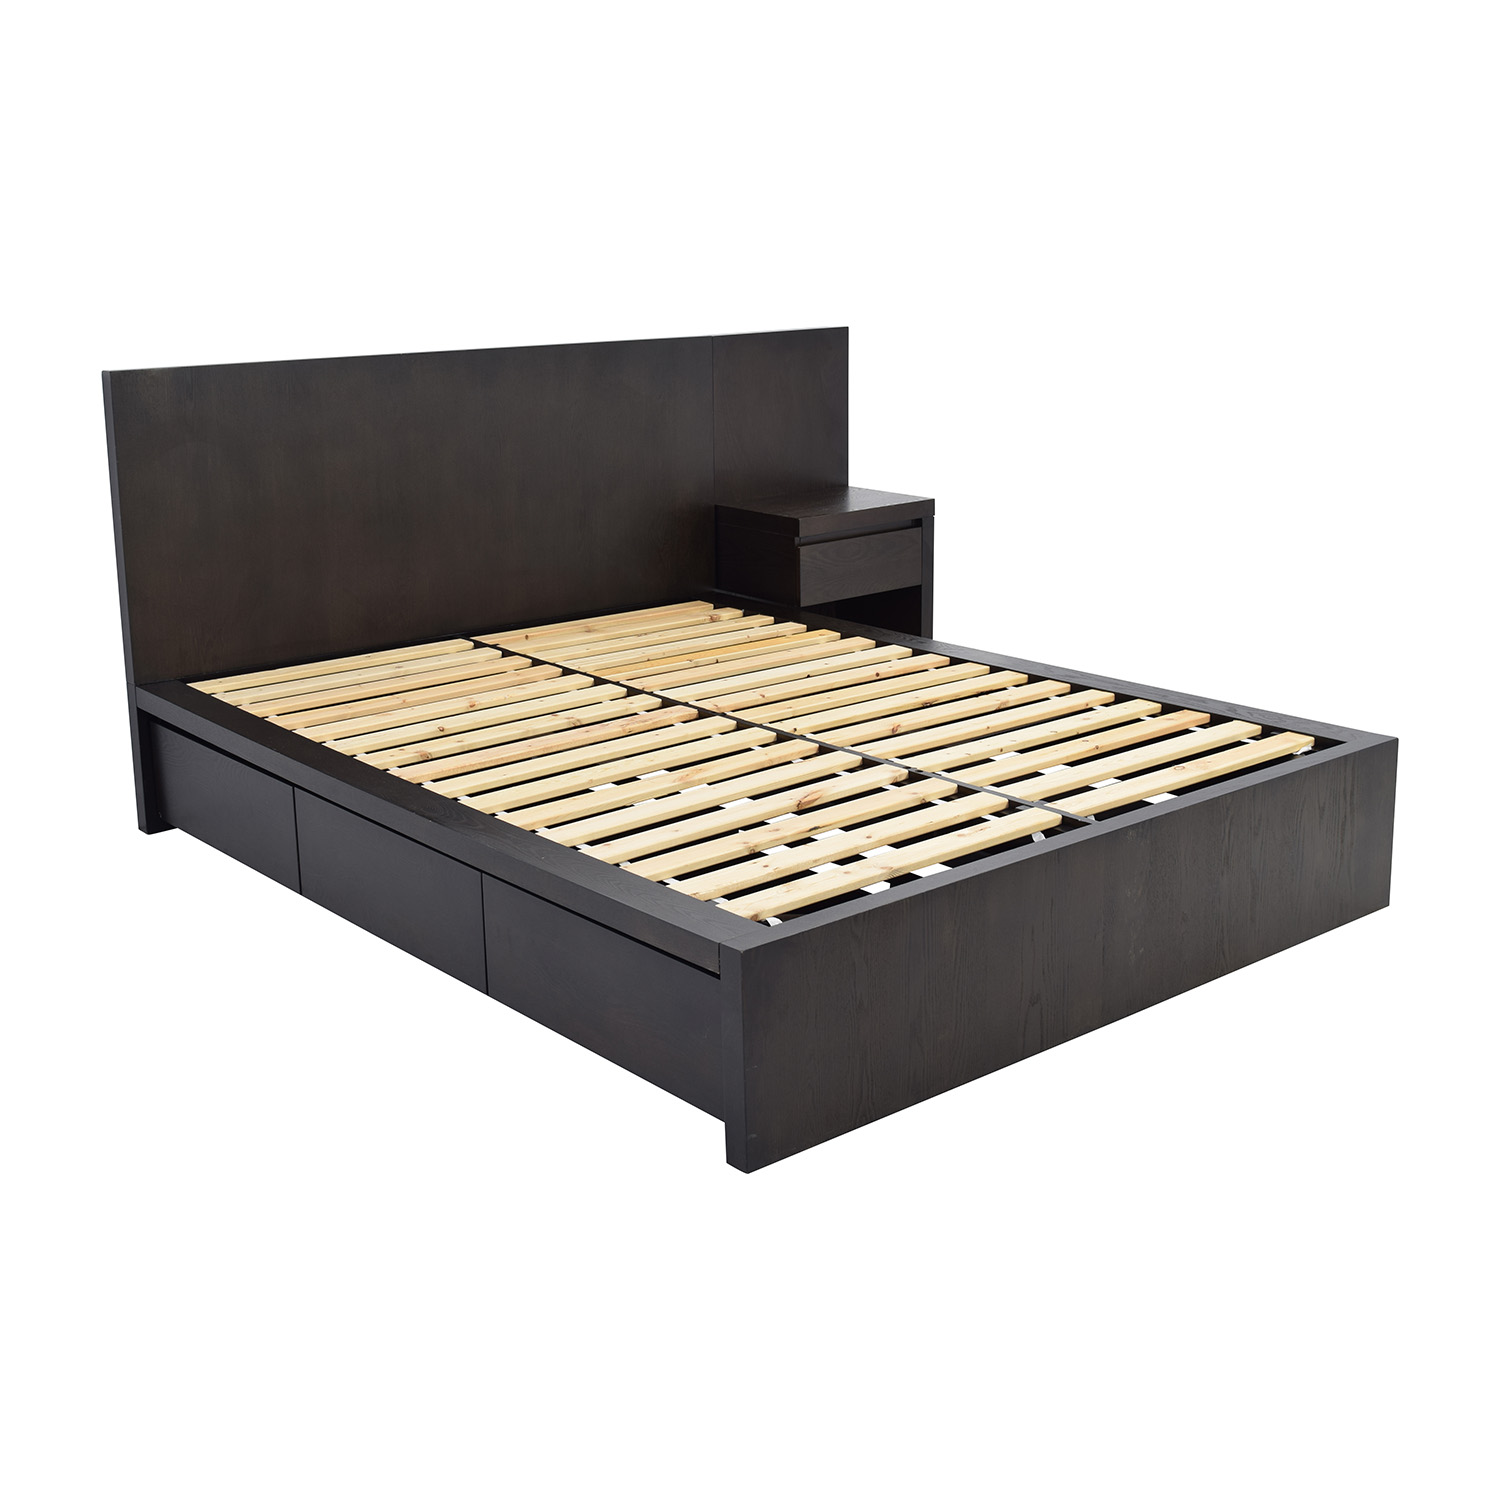 54 Off West Elm West Elm Storage Queen Platform Bed And